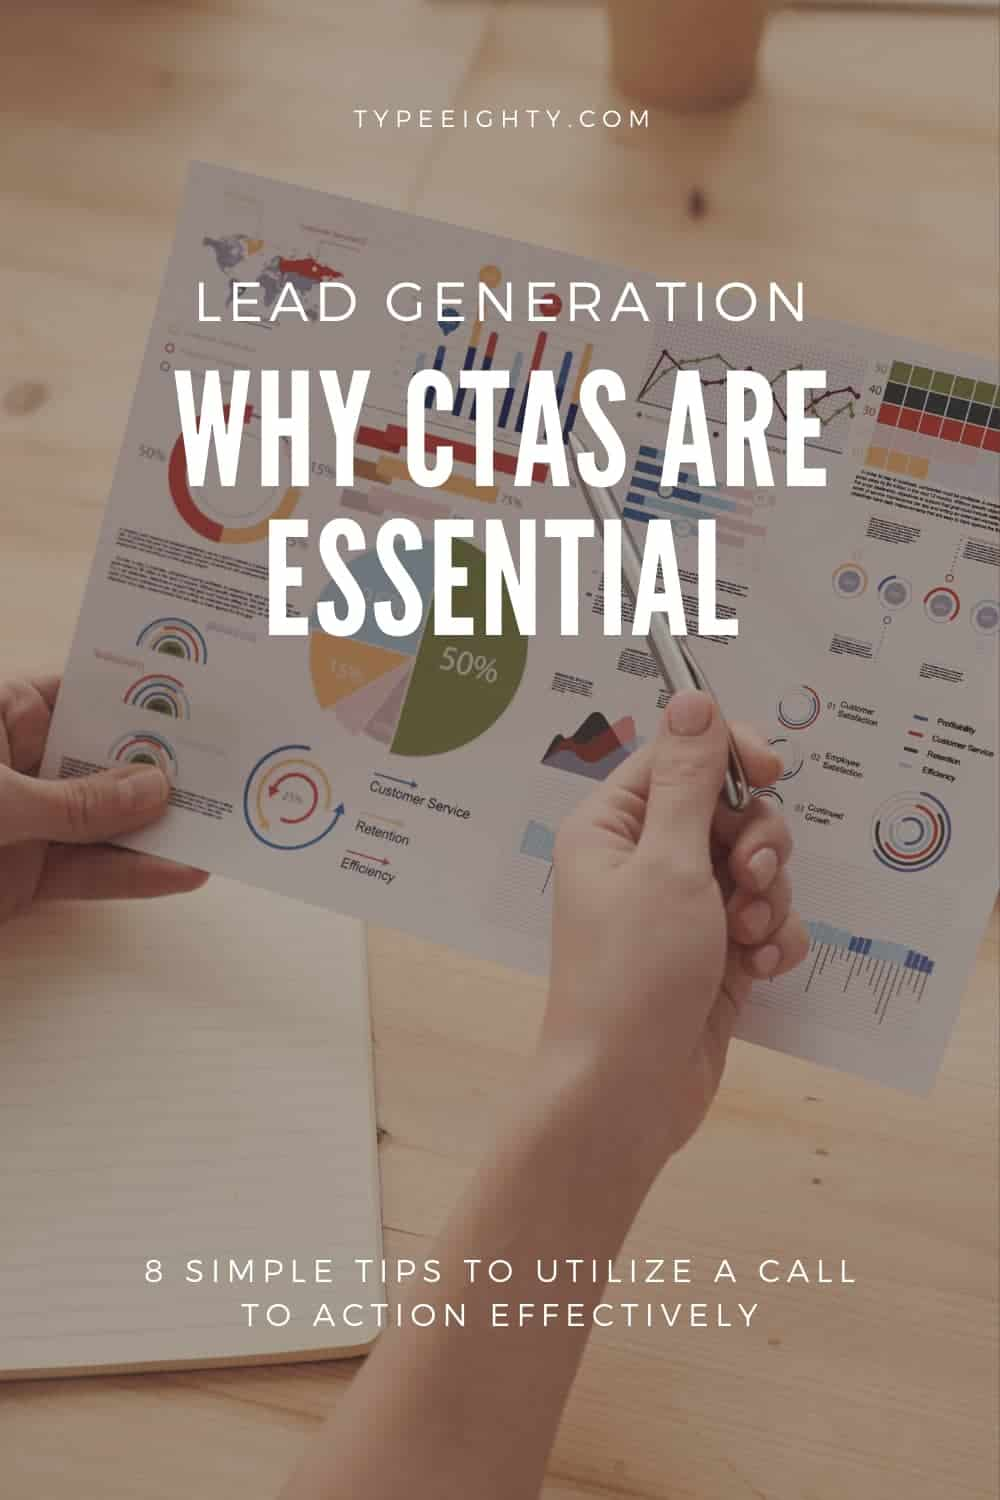 Why CTAs Are Essential to Lead Generation